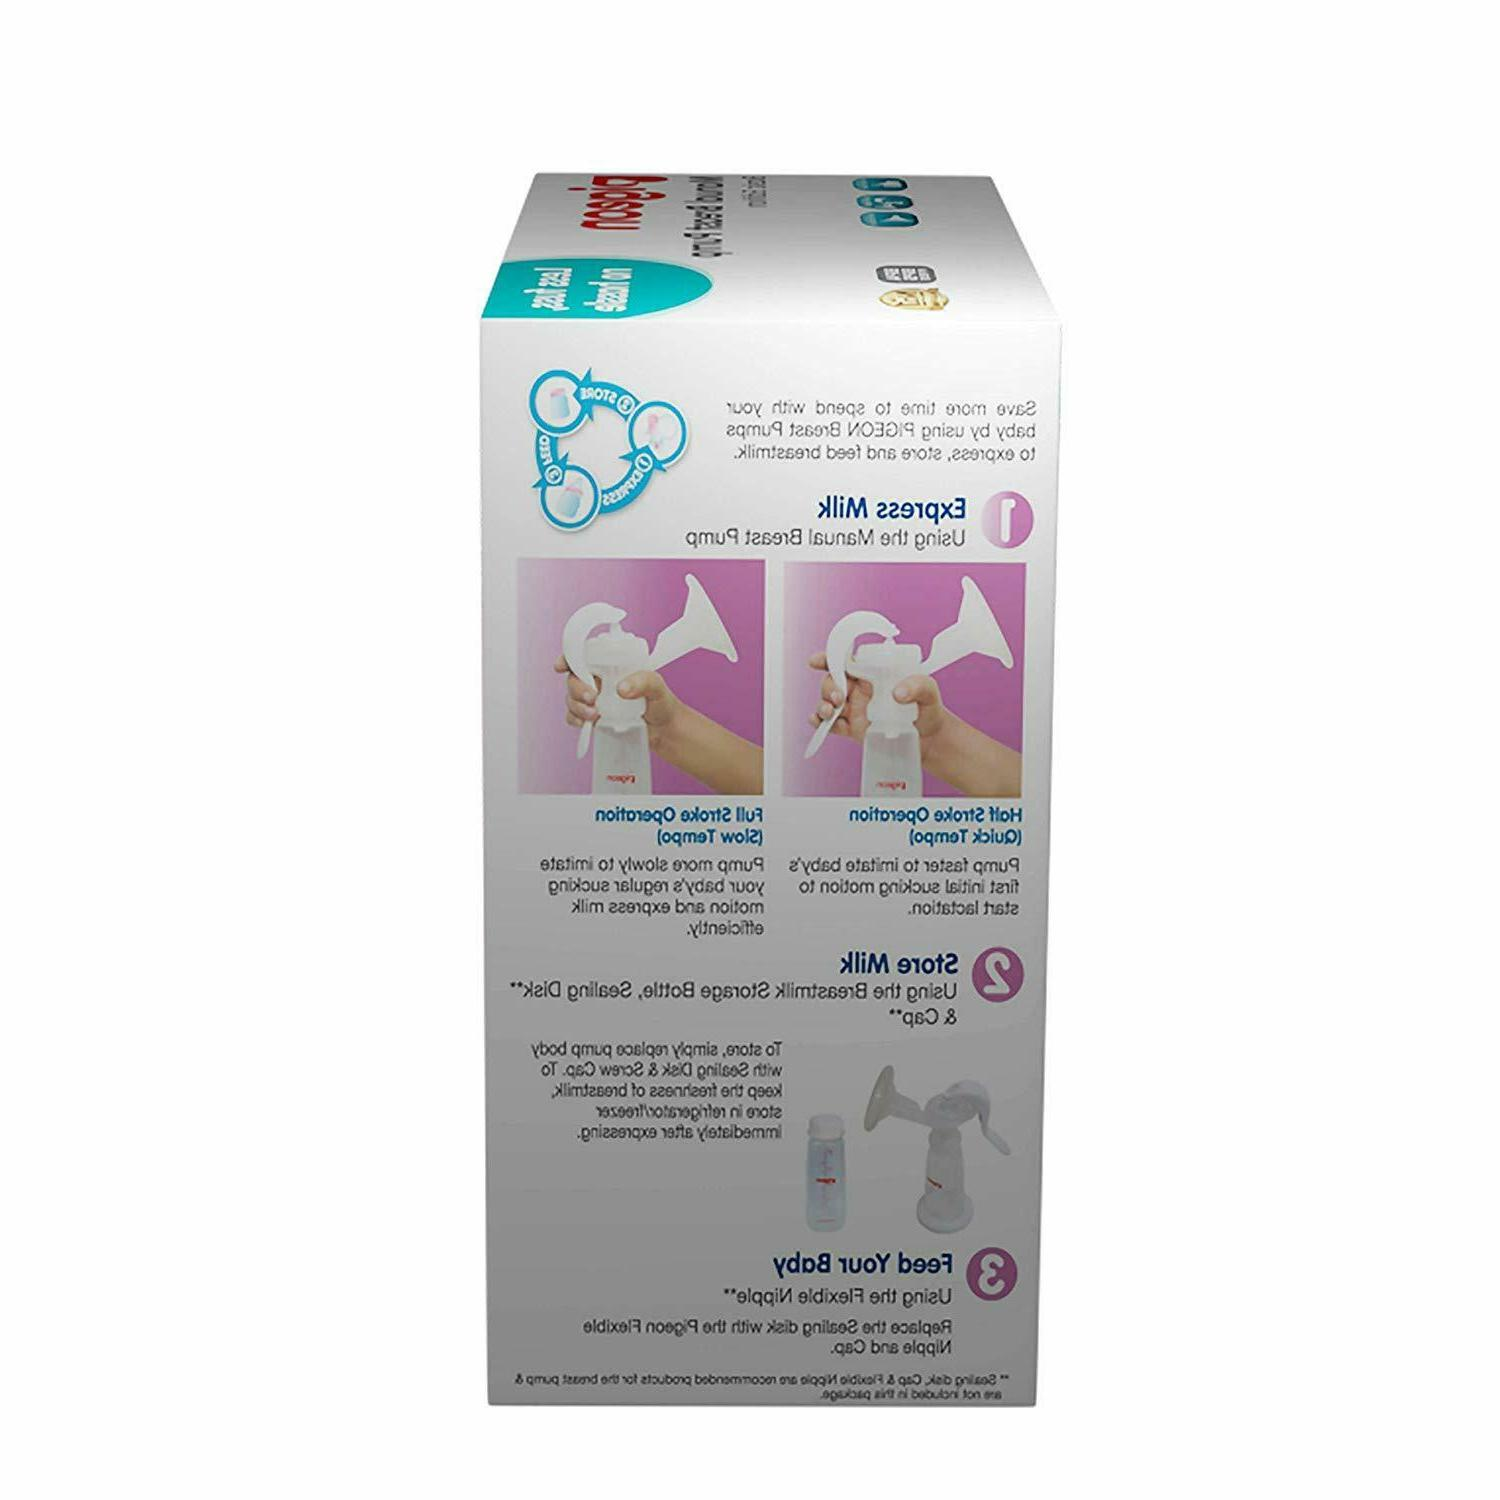 Pigeon Breast Pump - Basic adjustable pumping